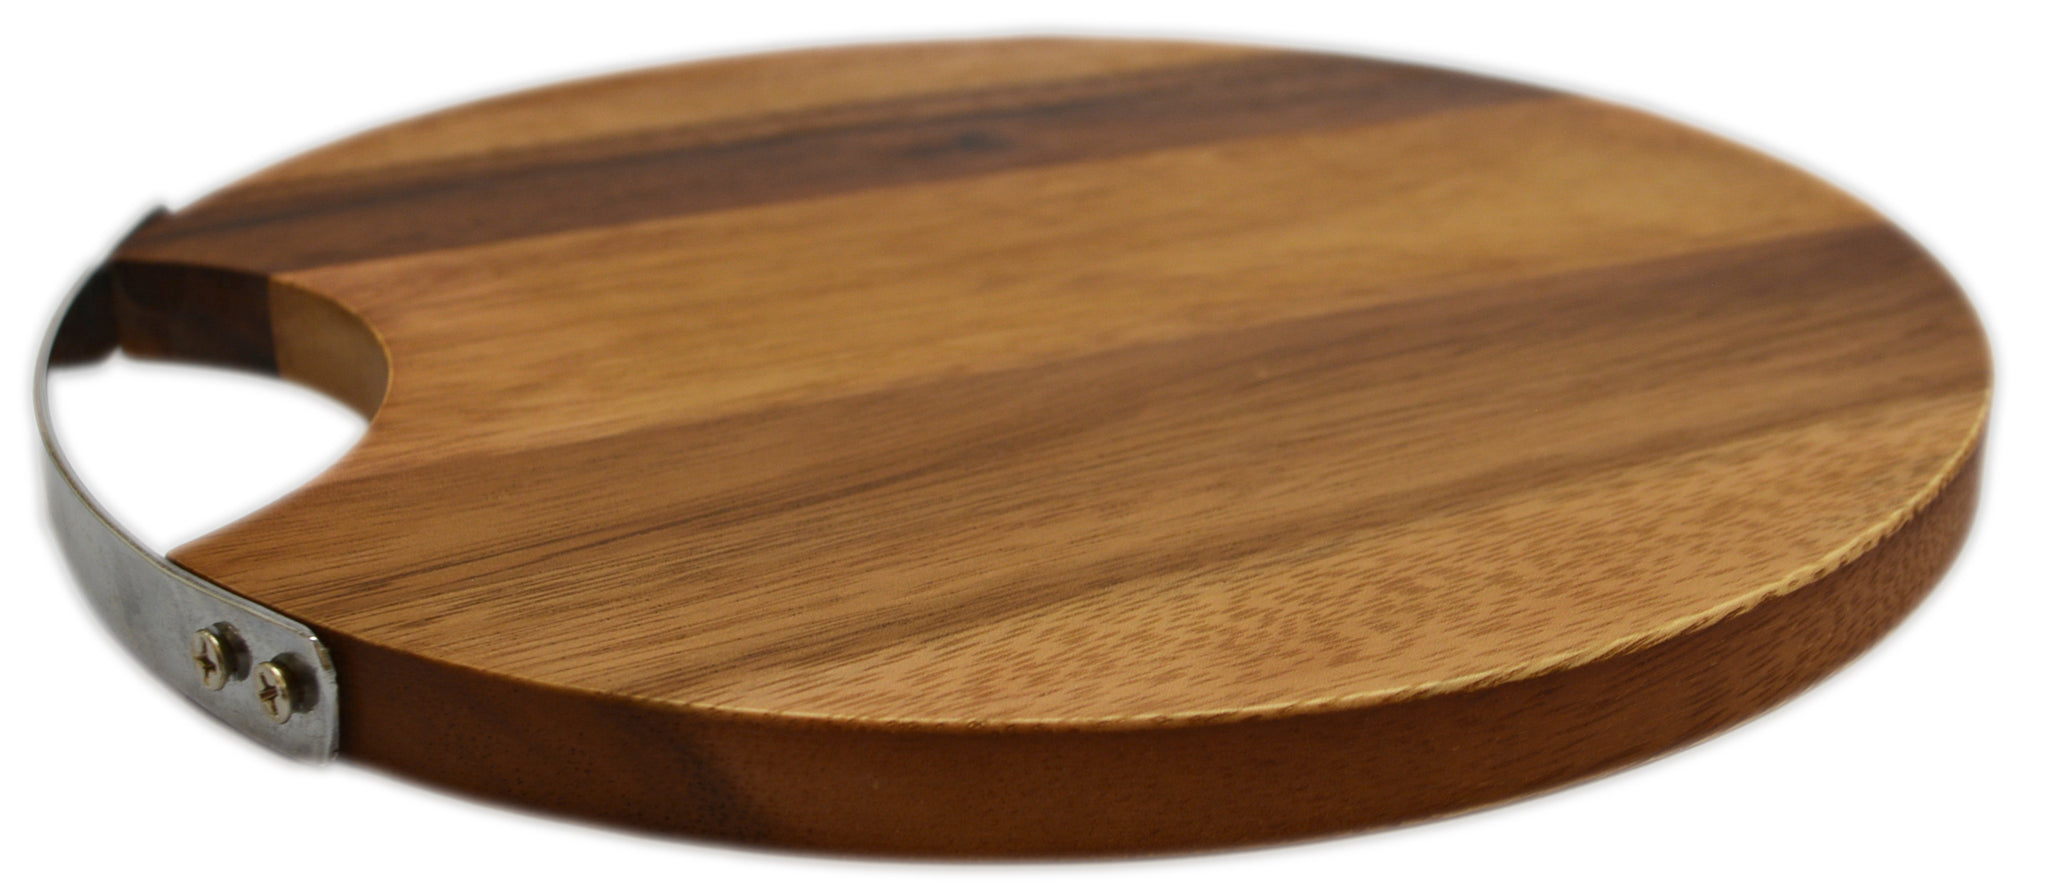 "roro 10"" Round Wood Cheese and Serve Board with Stainless Steel Handle"